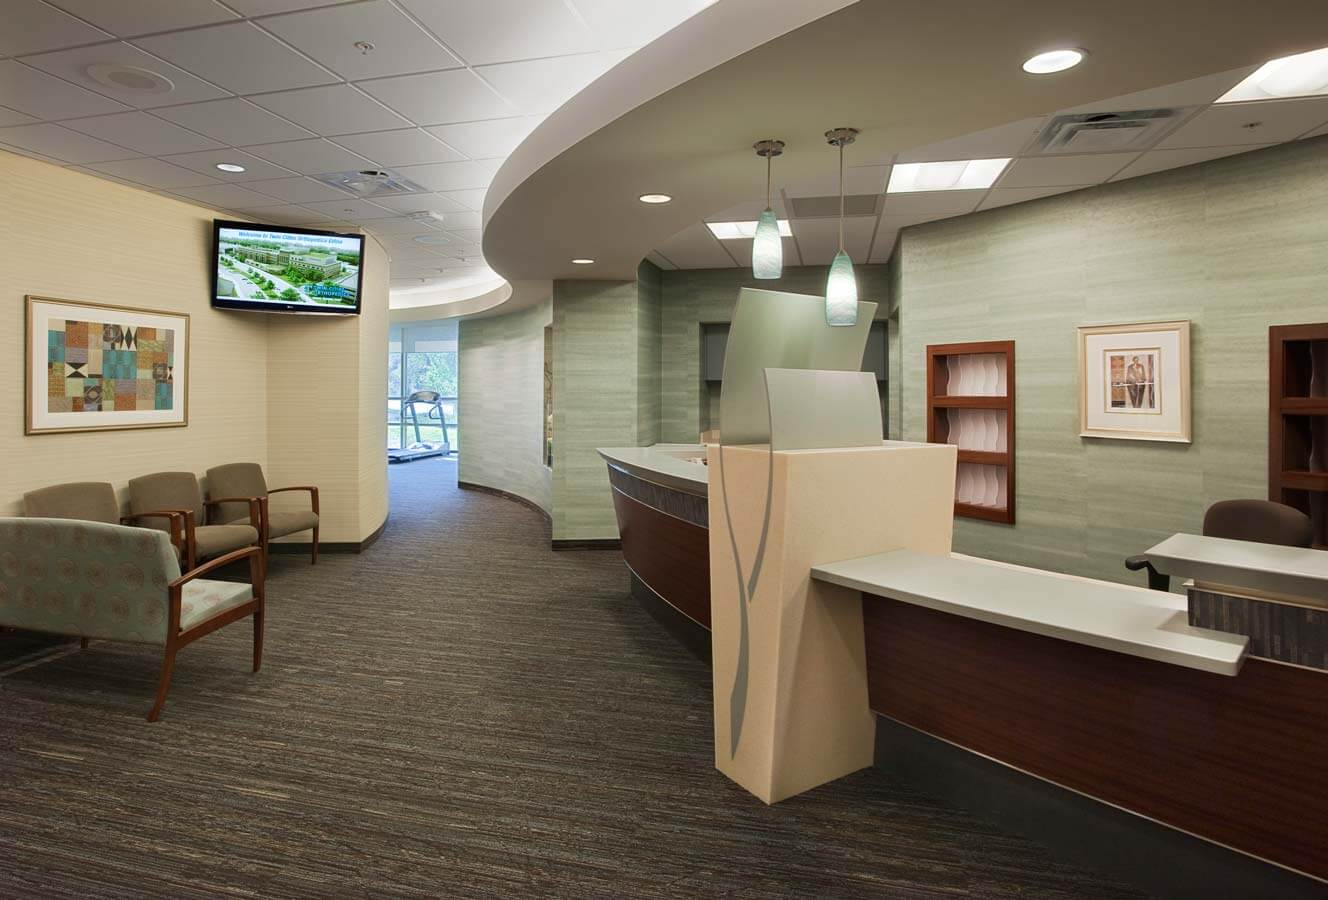 Twin cities orthopedics edina site planning specialty for Interior design minneapolis